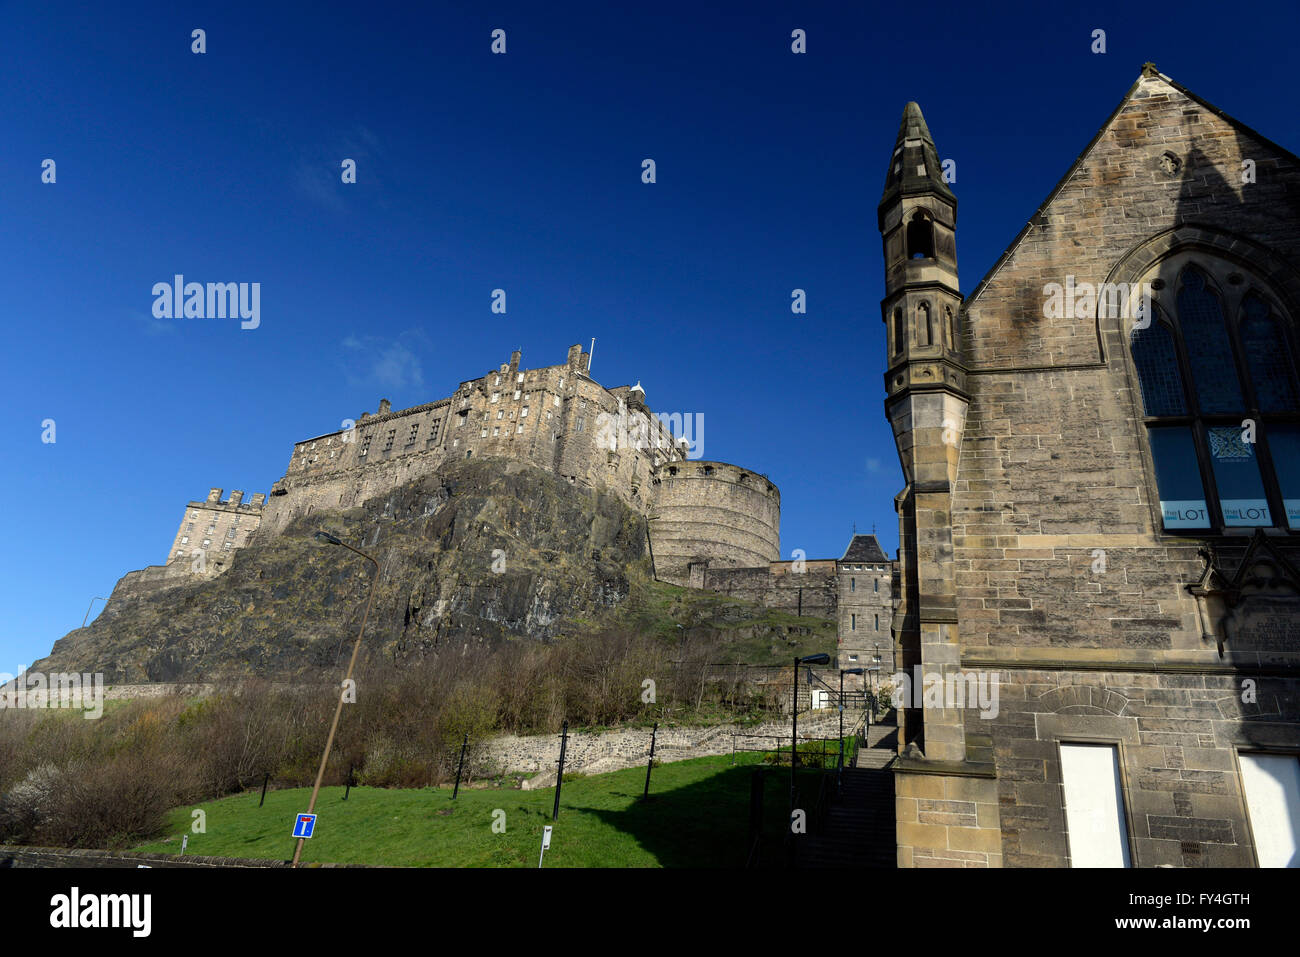 stock edinburgh castle - photo #4